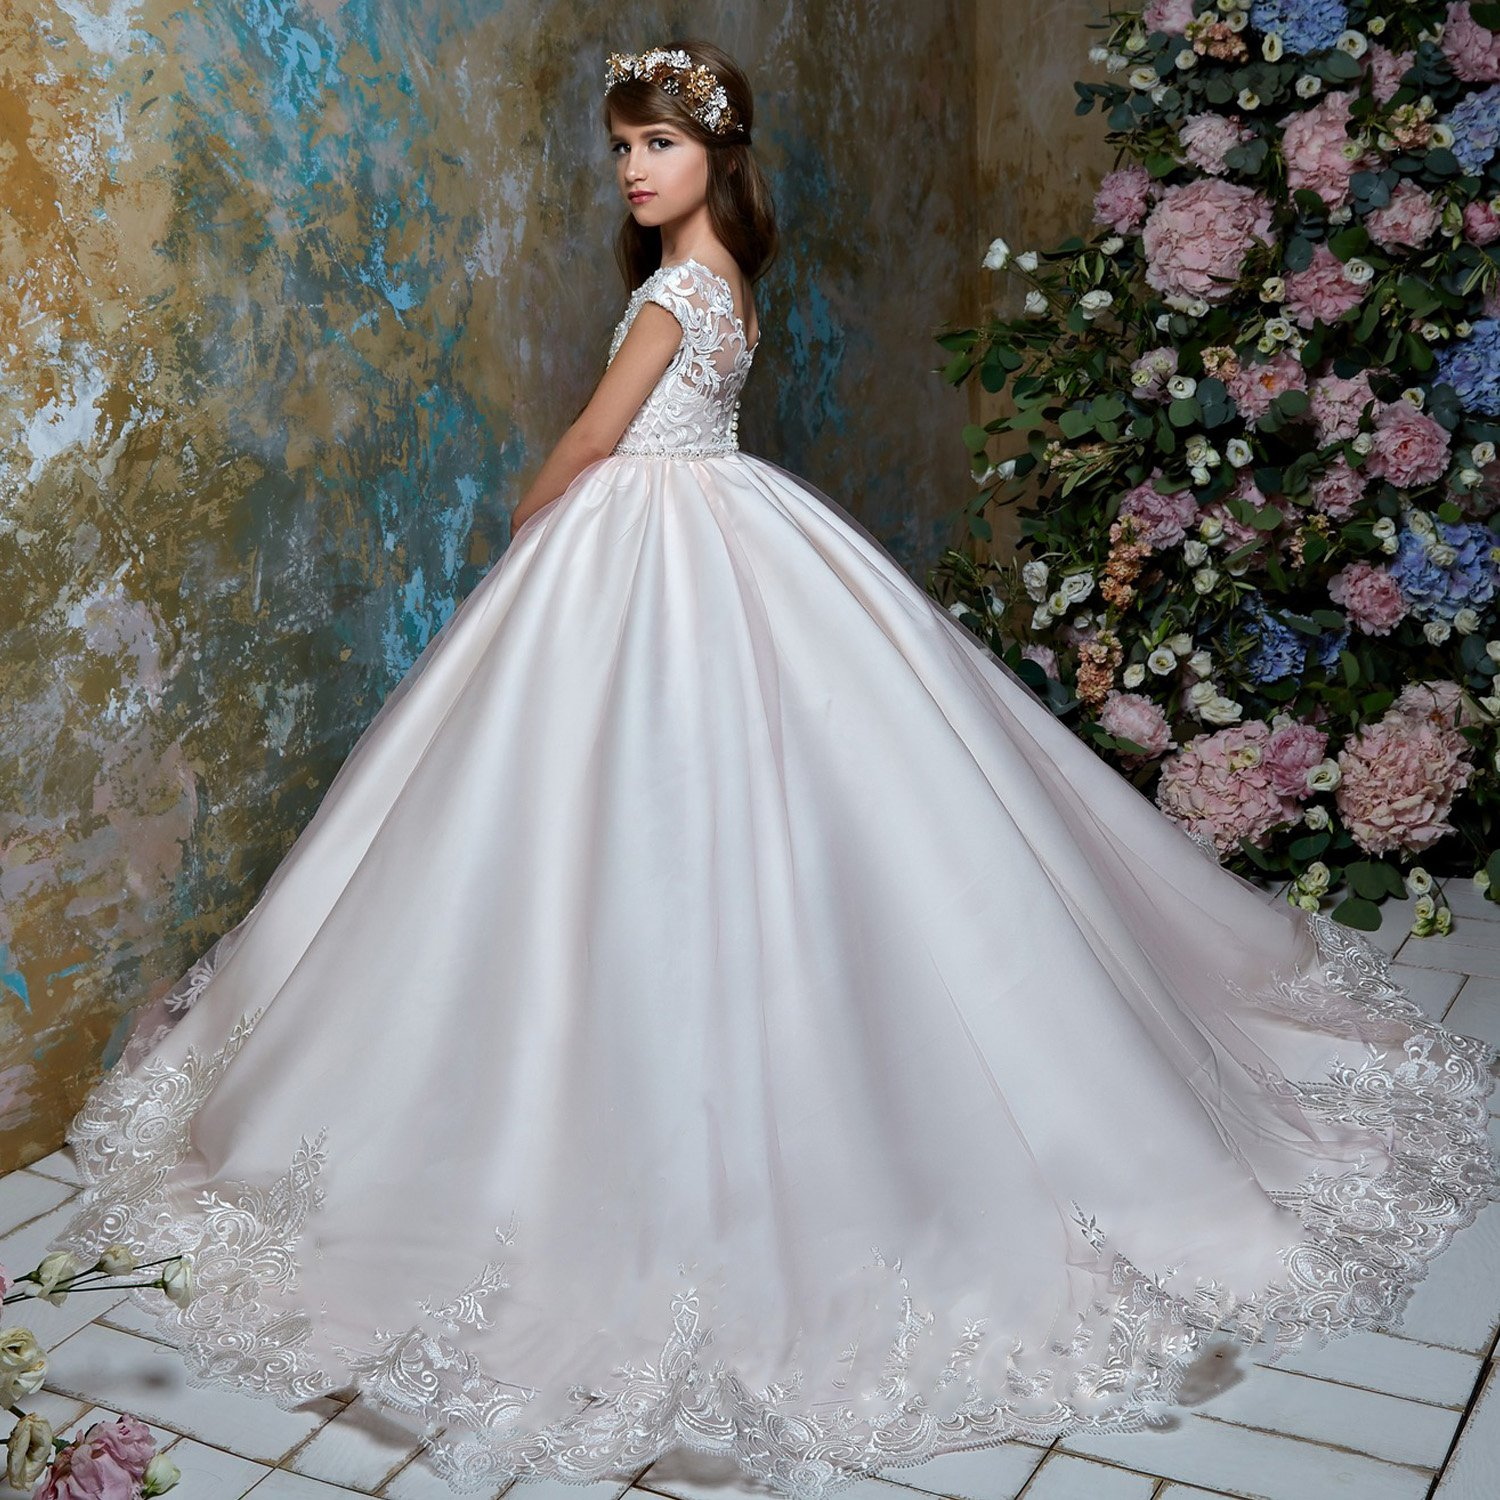 Amazon.com: SHENLINQIJ Flower Girls Dresses Long Vintage Lace First Communion Pageant Ball Gowns: Clothing